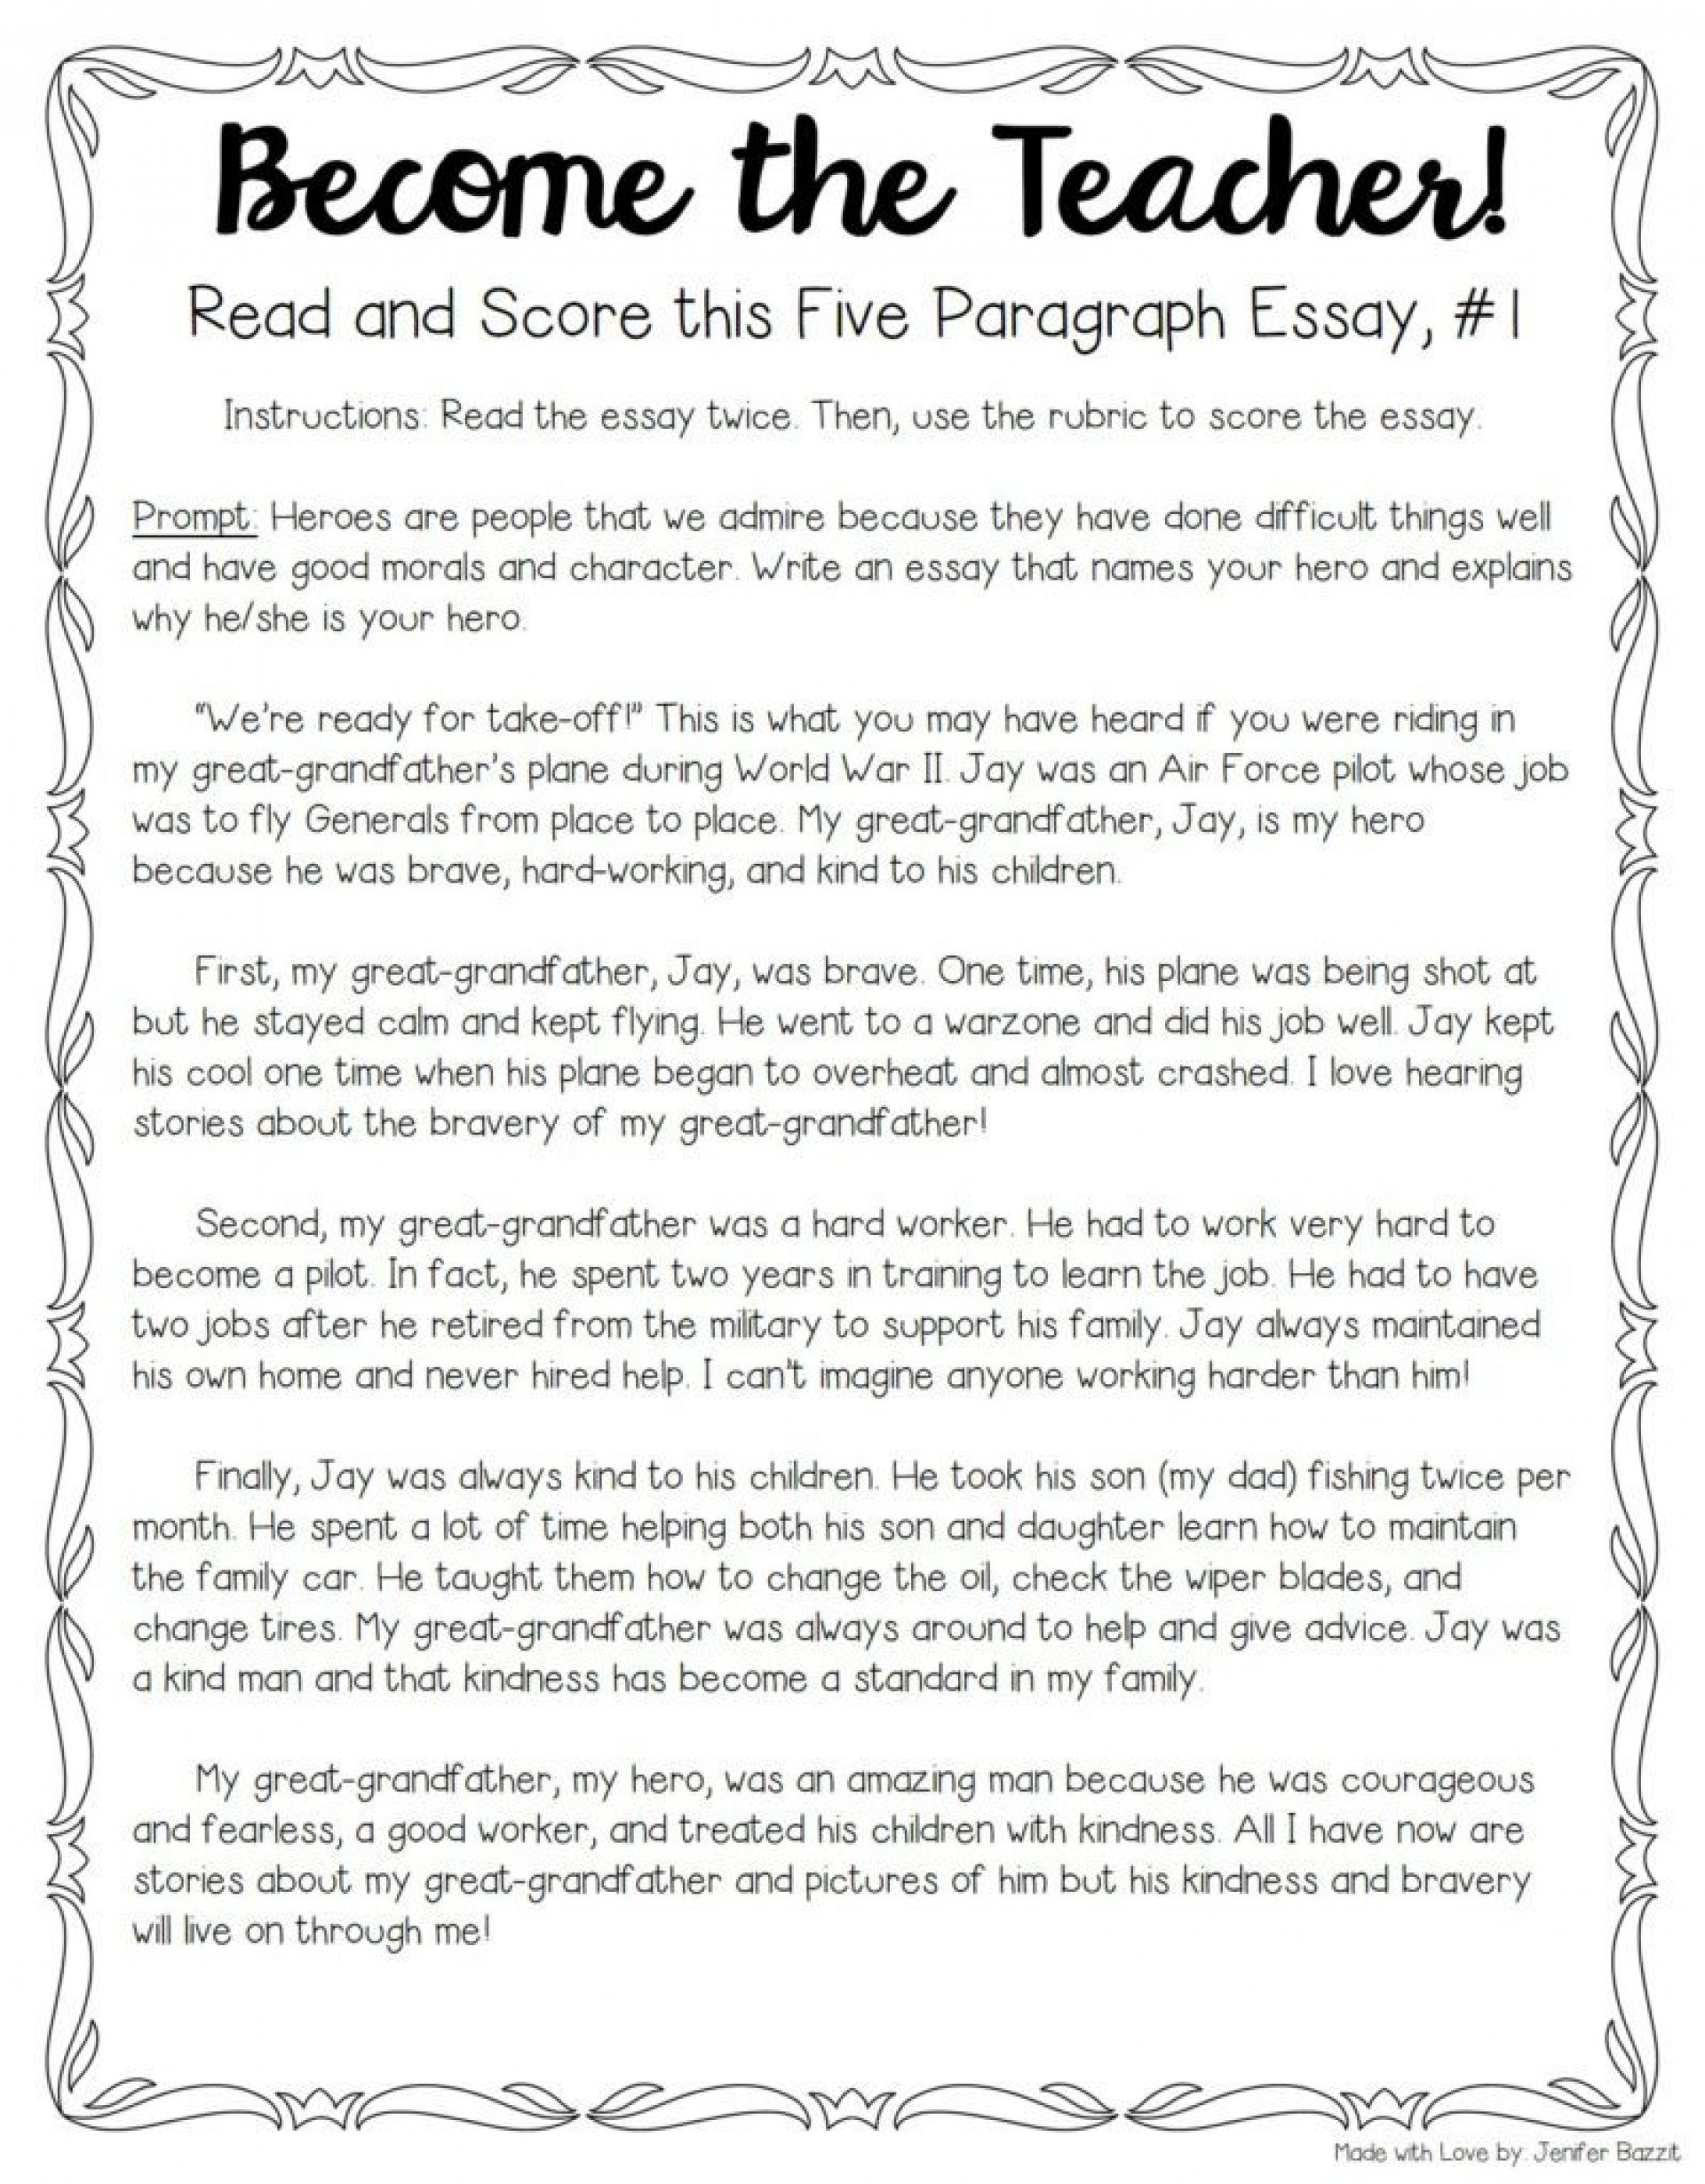 014 Five Paragraph Essay Full 799x1024resize7992c1024 Example Read Unusual My Online Reddit For Free 1920